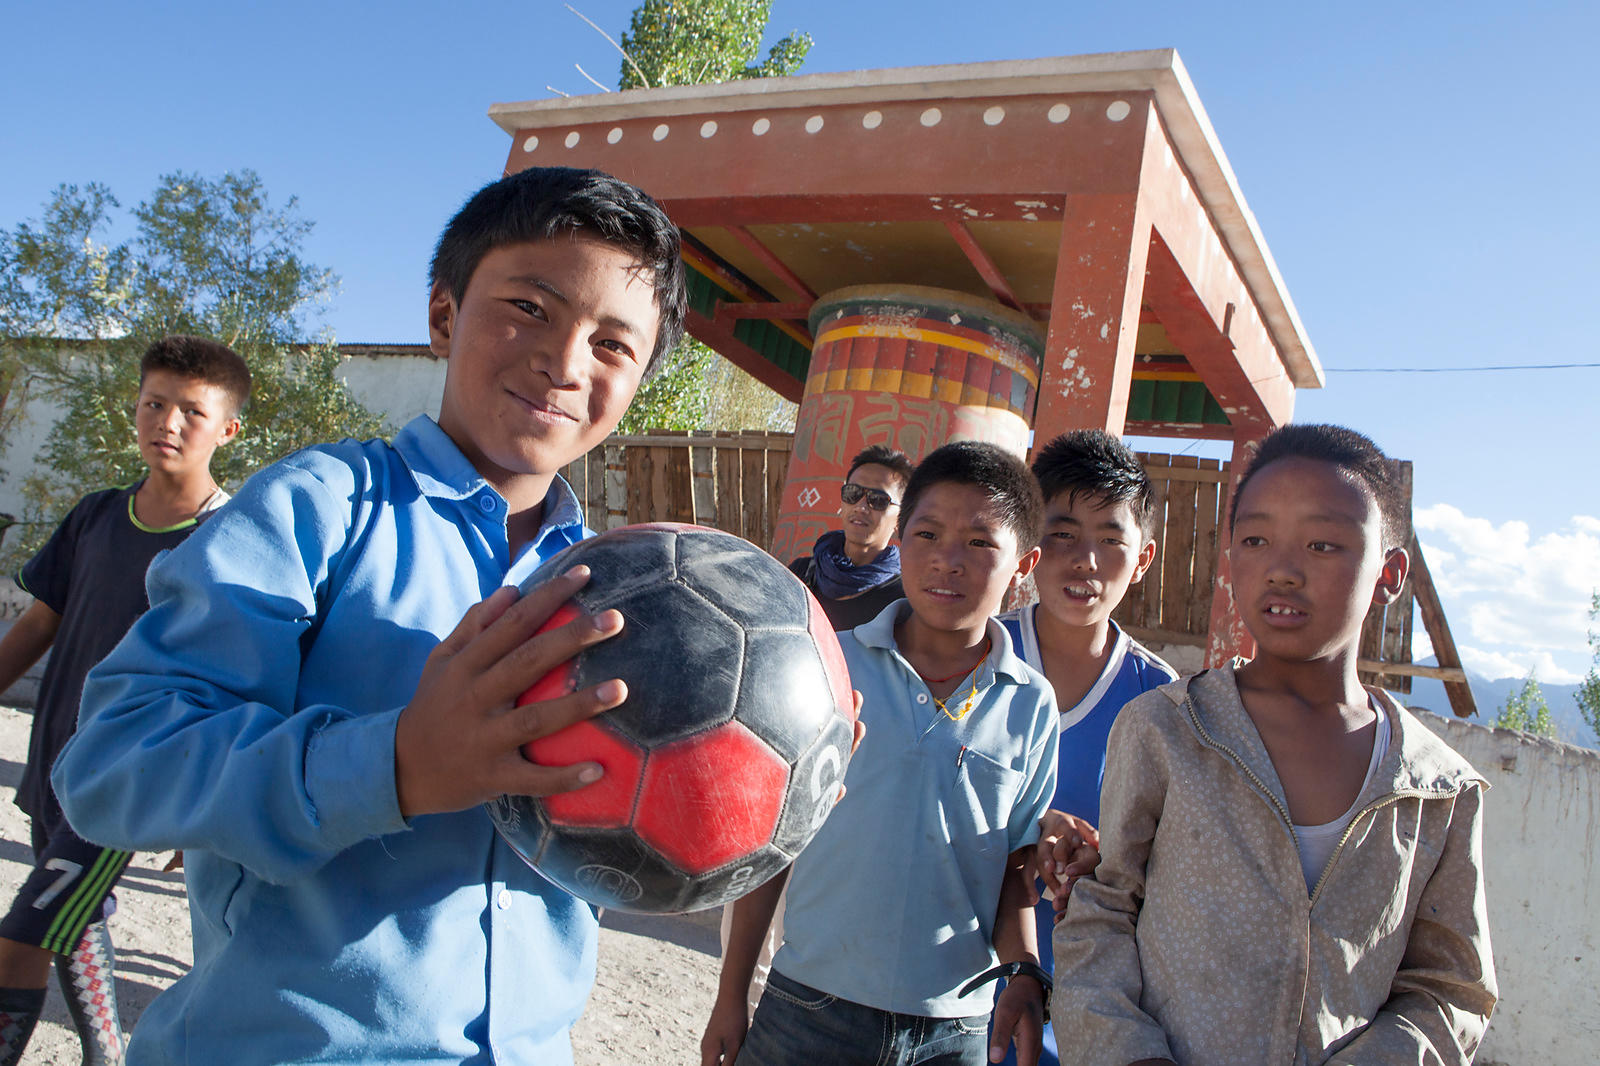 Kalsang, 12 ans avec un ballon de football dans les mains, Ladakh, Inde / Kalsang, 12 years old with a soccer ball in his han...